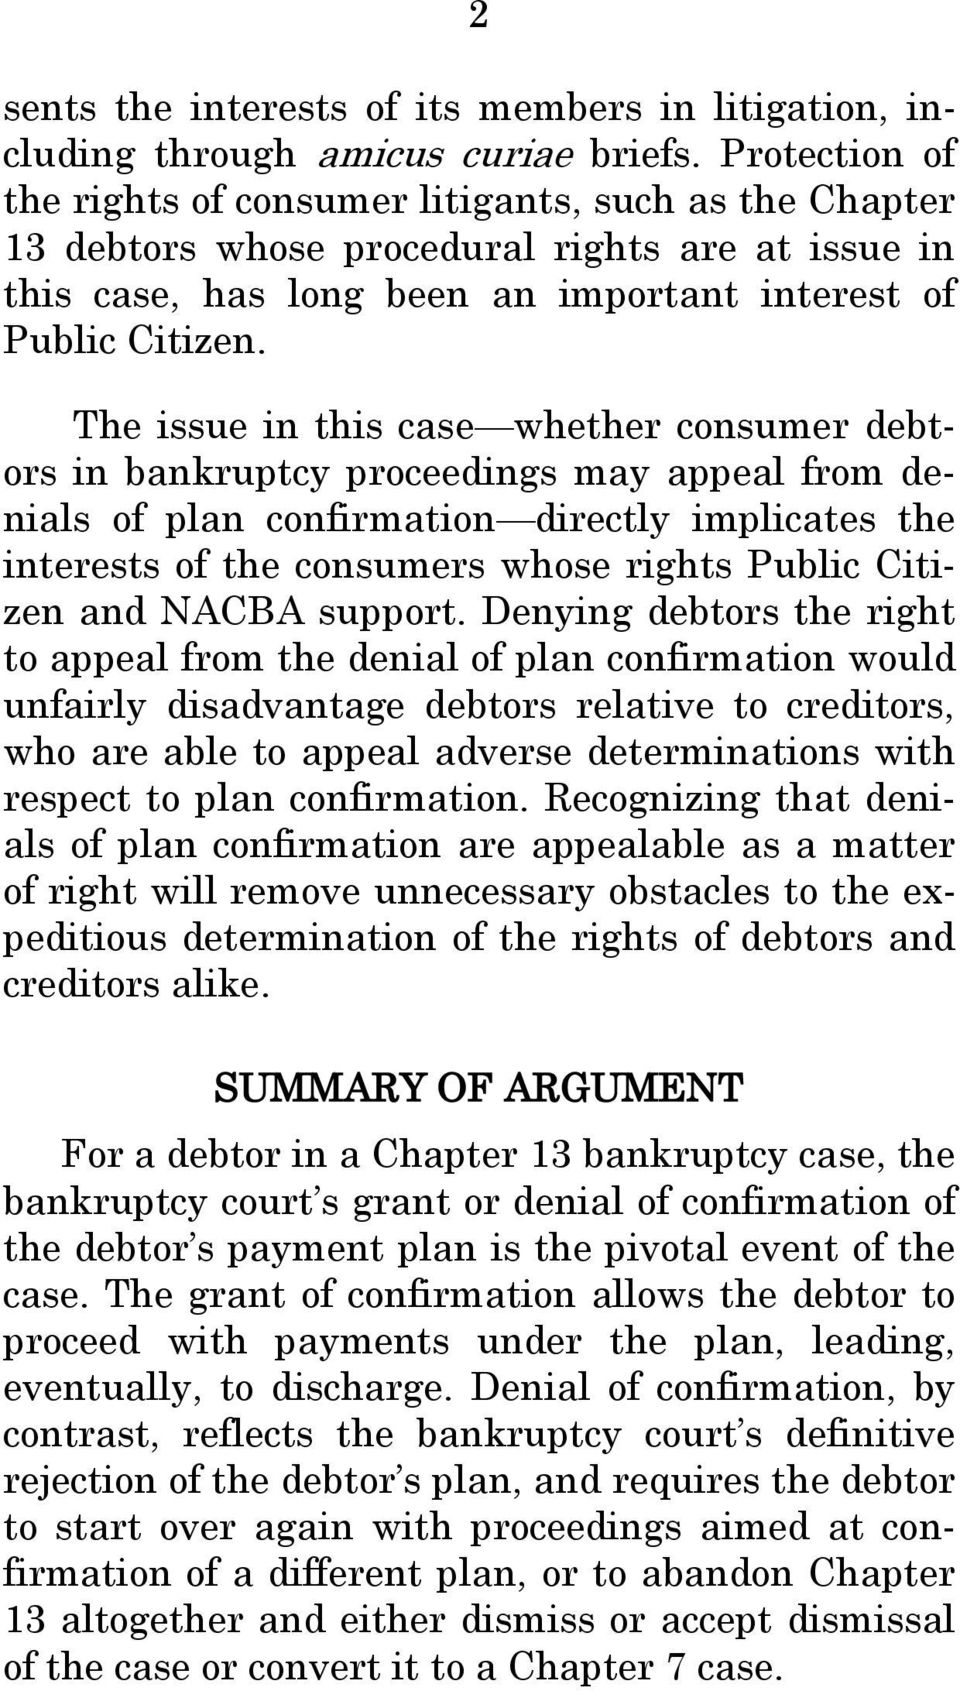 The issue in this case whether consumer debtors in bankruptcy proceedings may appeal from denials of plan confirmation directly implicates the interests of the consumers whose rights Public Citizen